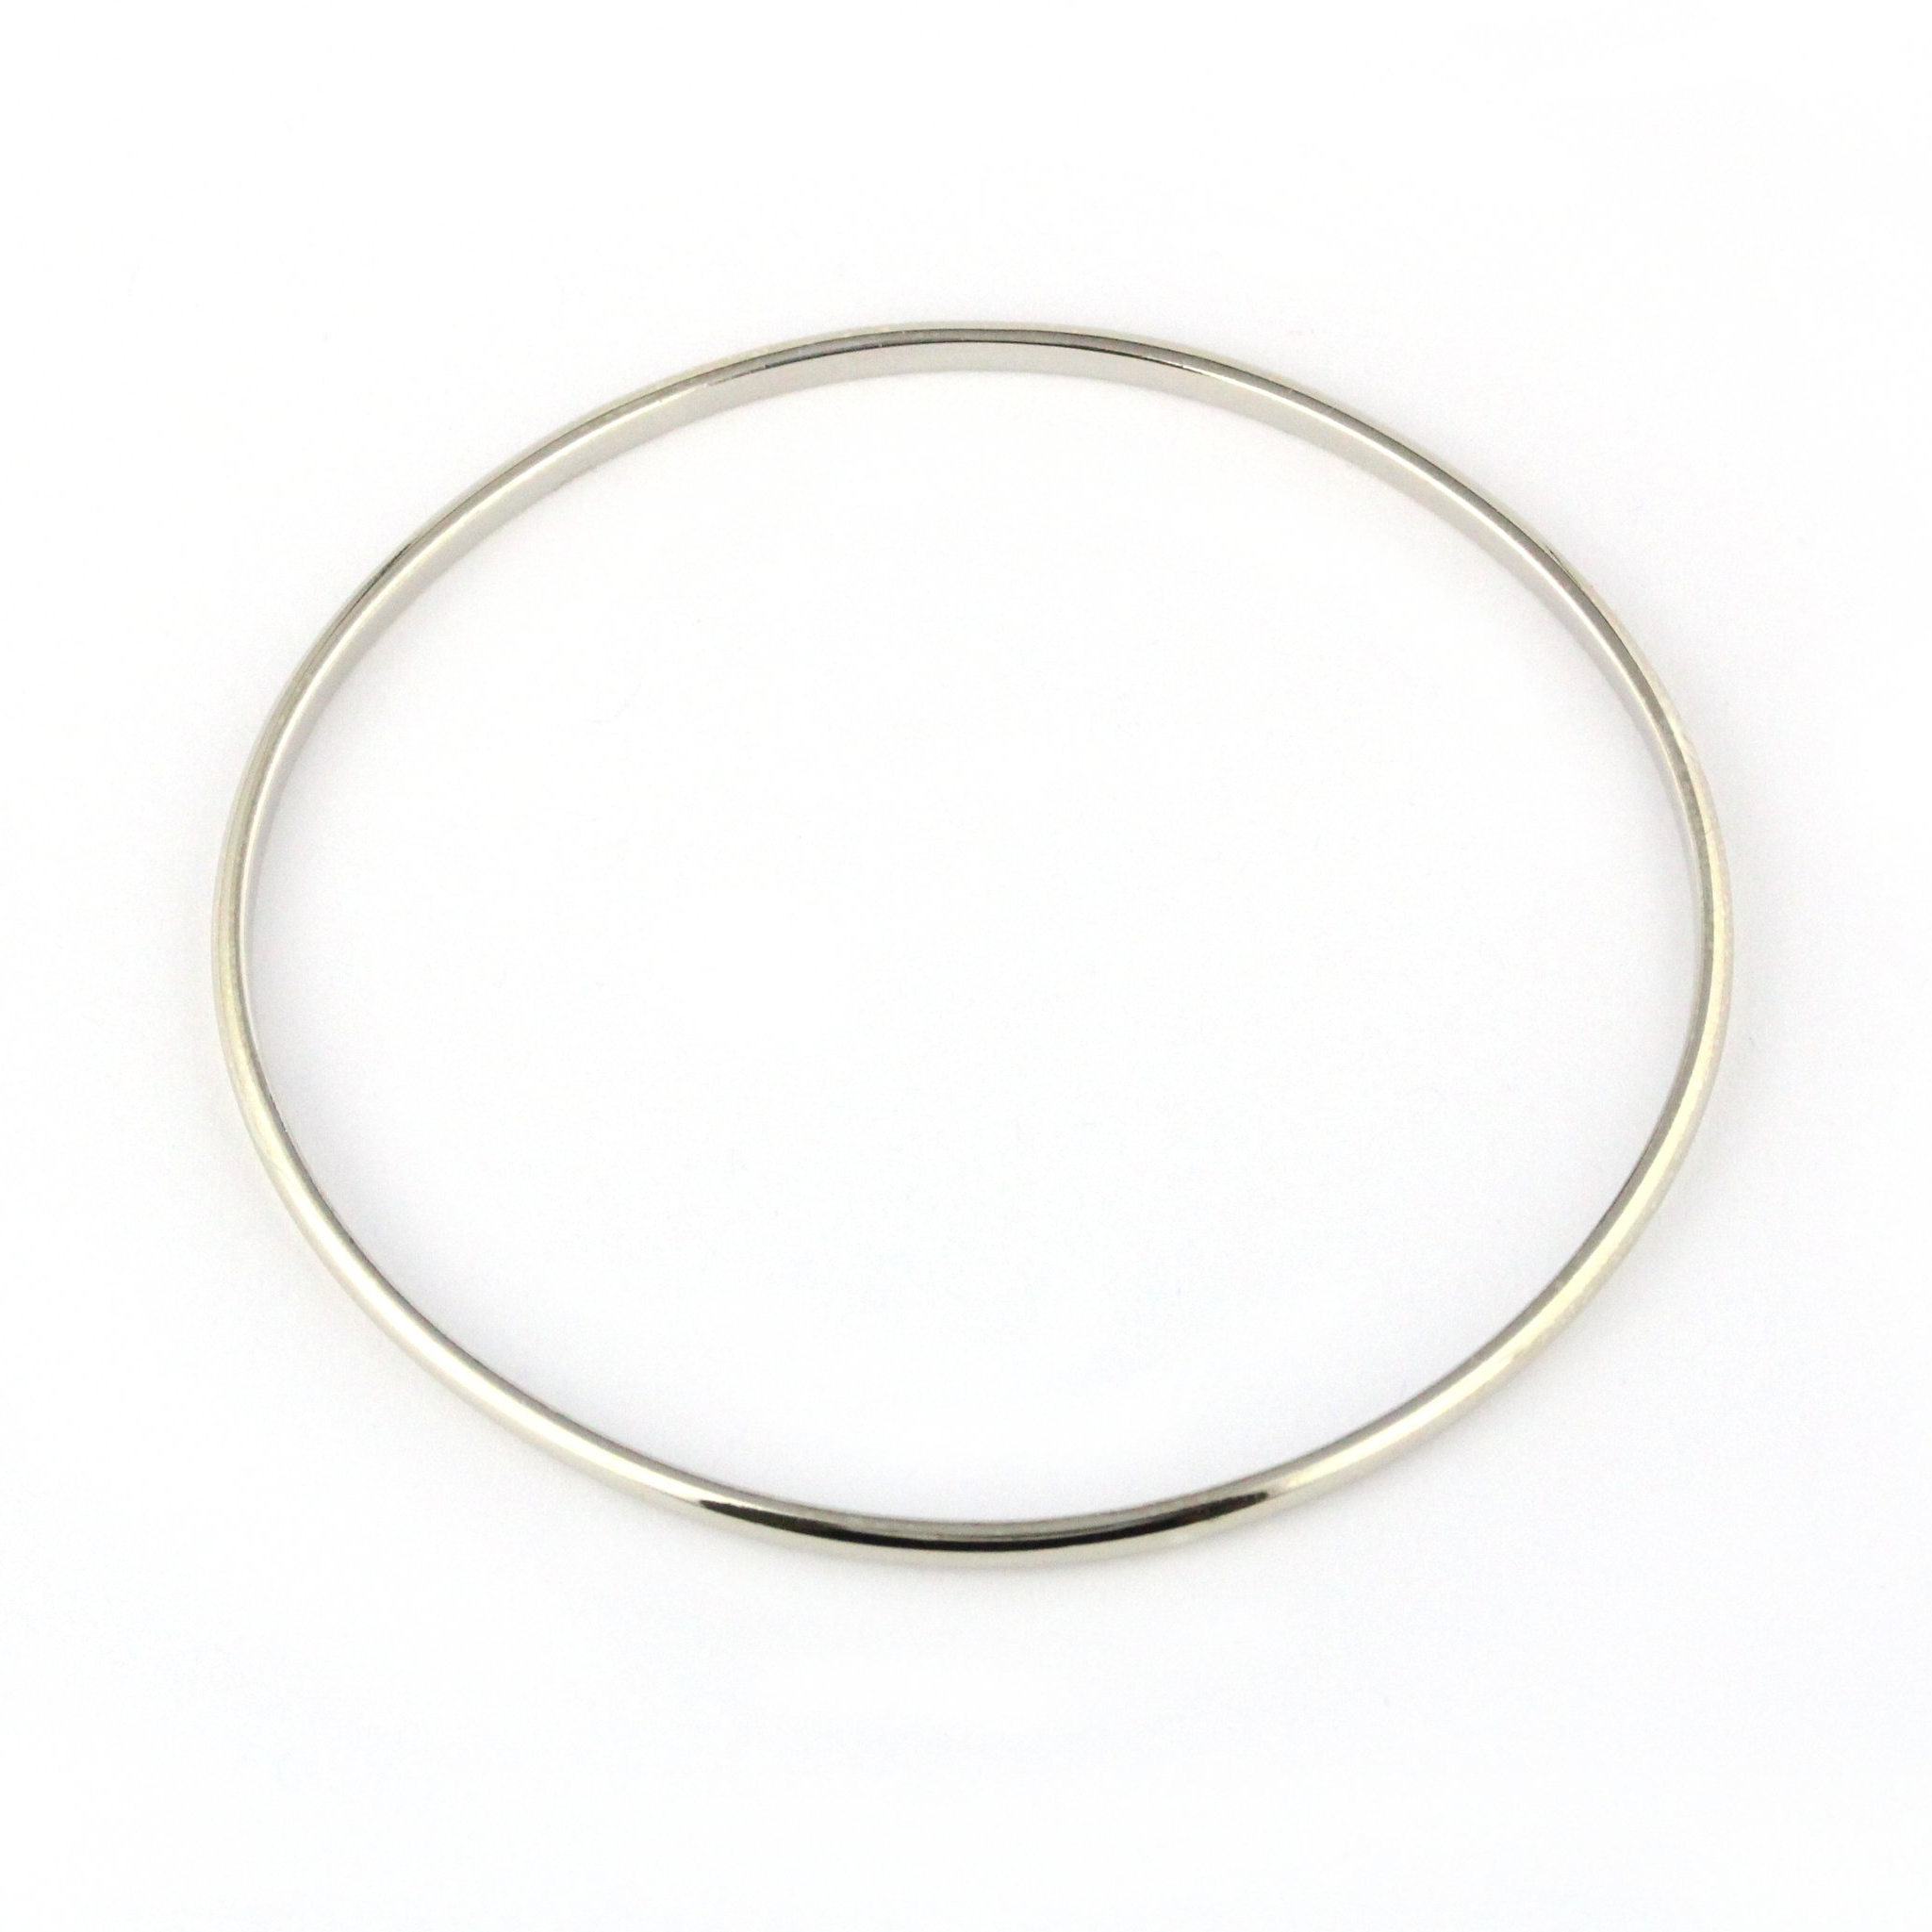 Thin white gold oval bangle.